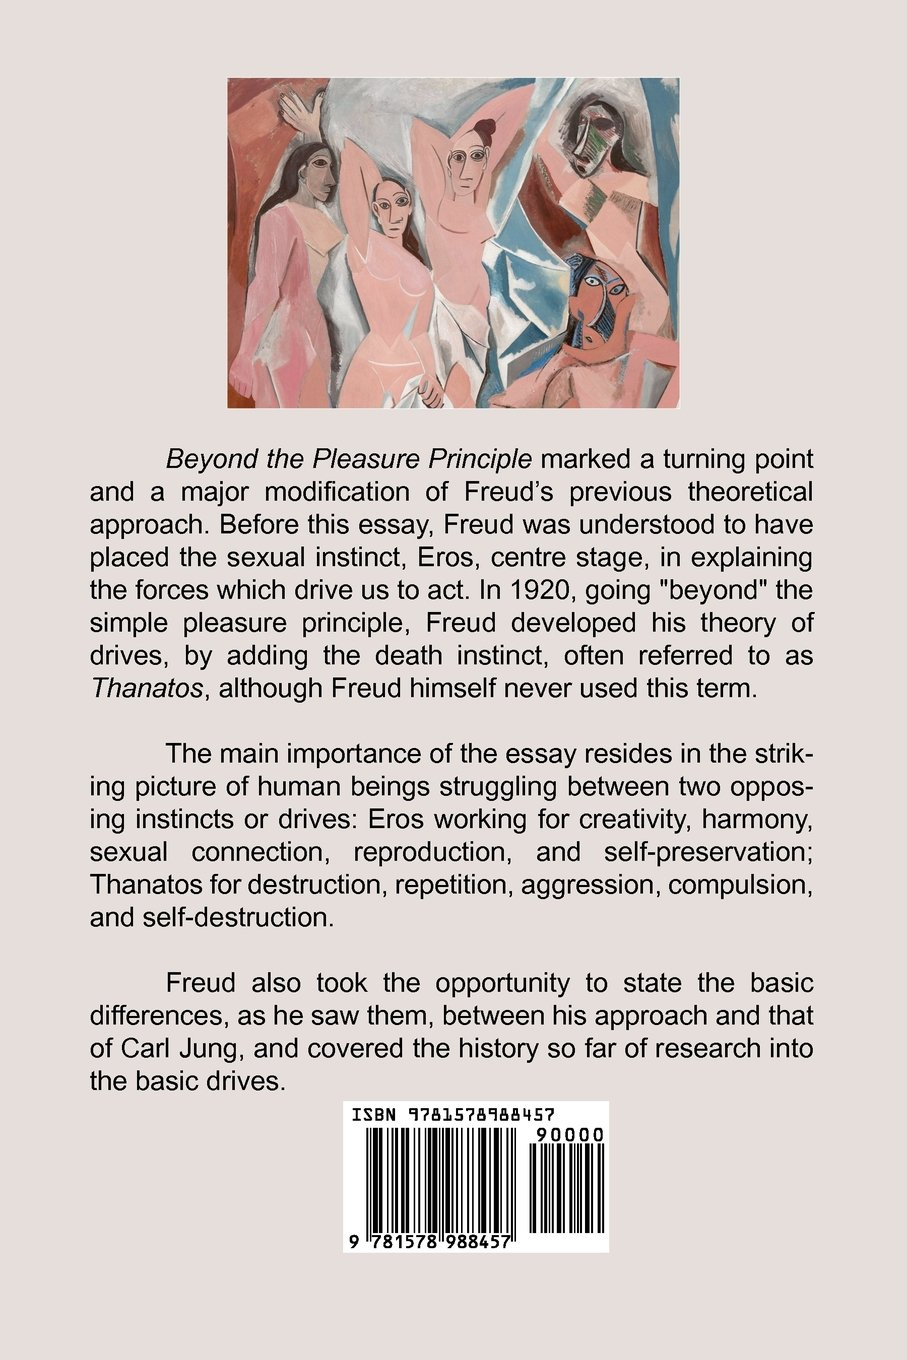 beyond the pleasure principle first edition text sigmund freud beyond the pleasure principle first edition text sigmund freud 9781578988457 com books